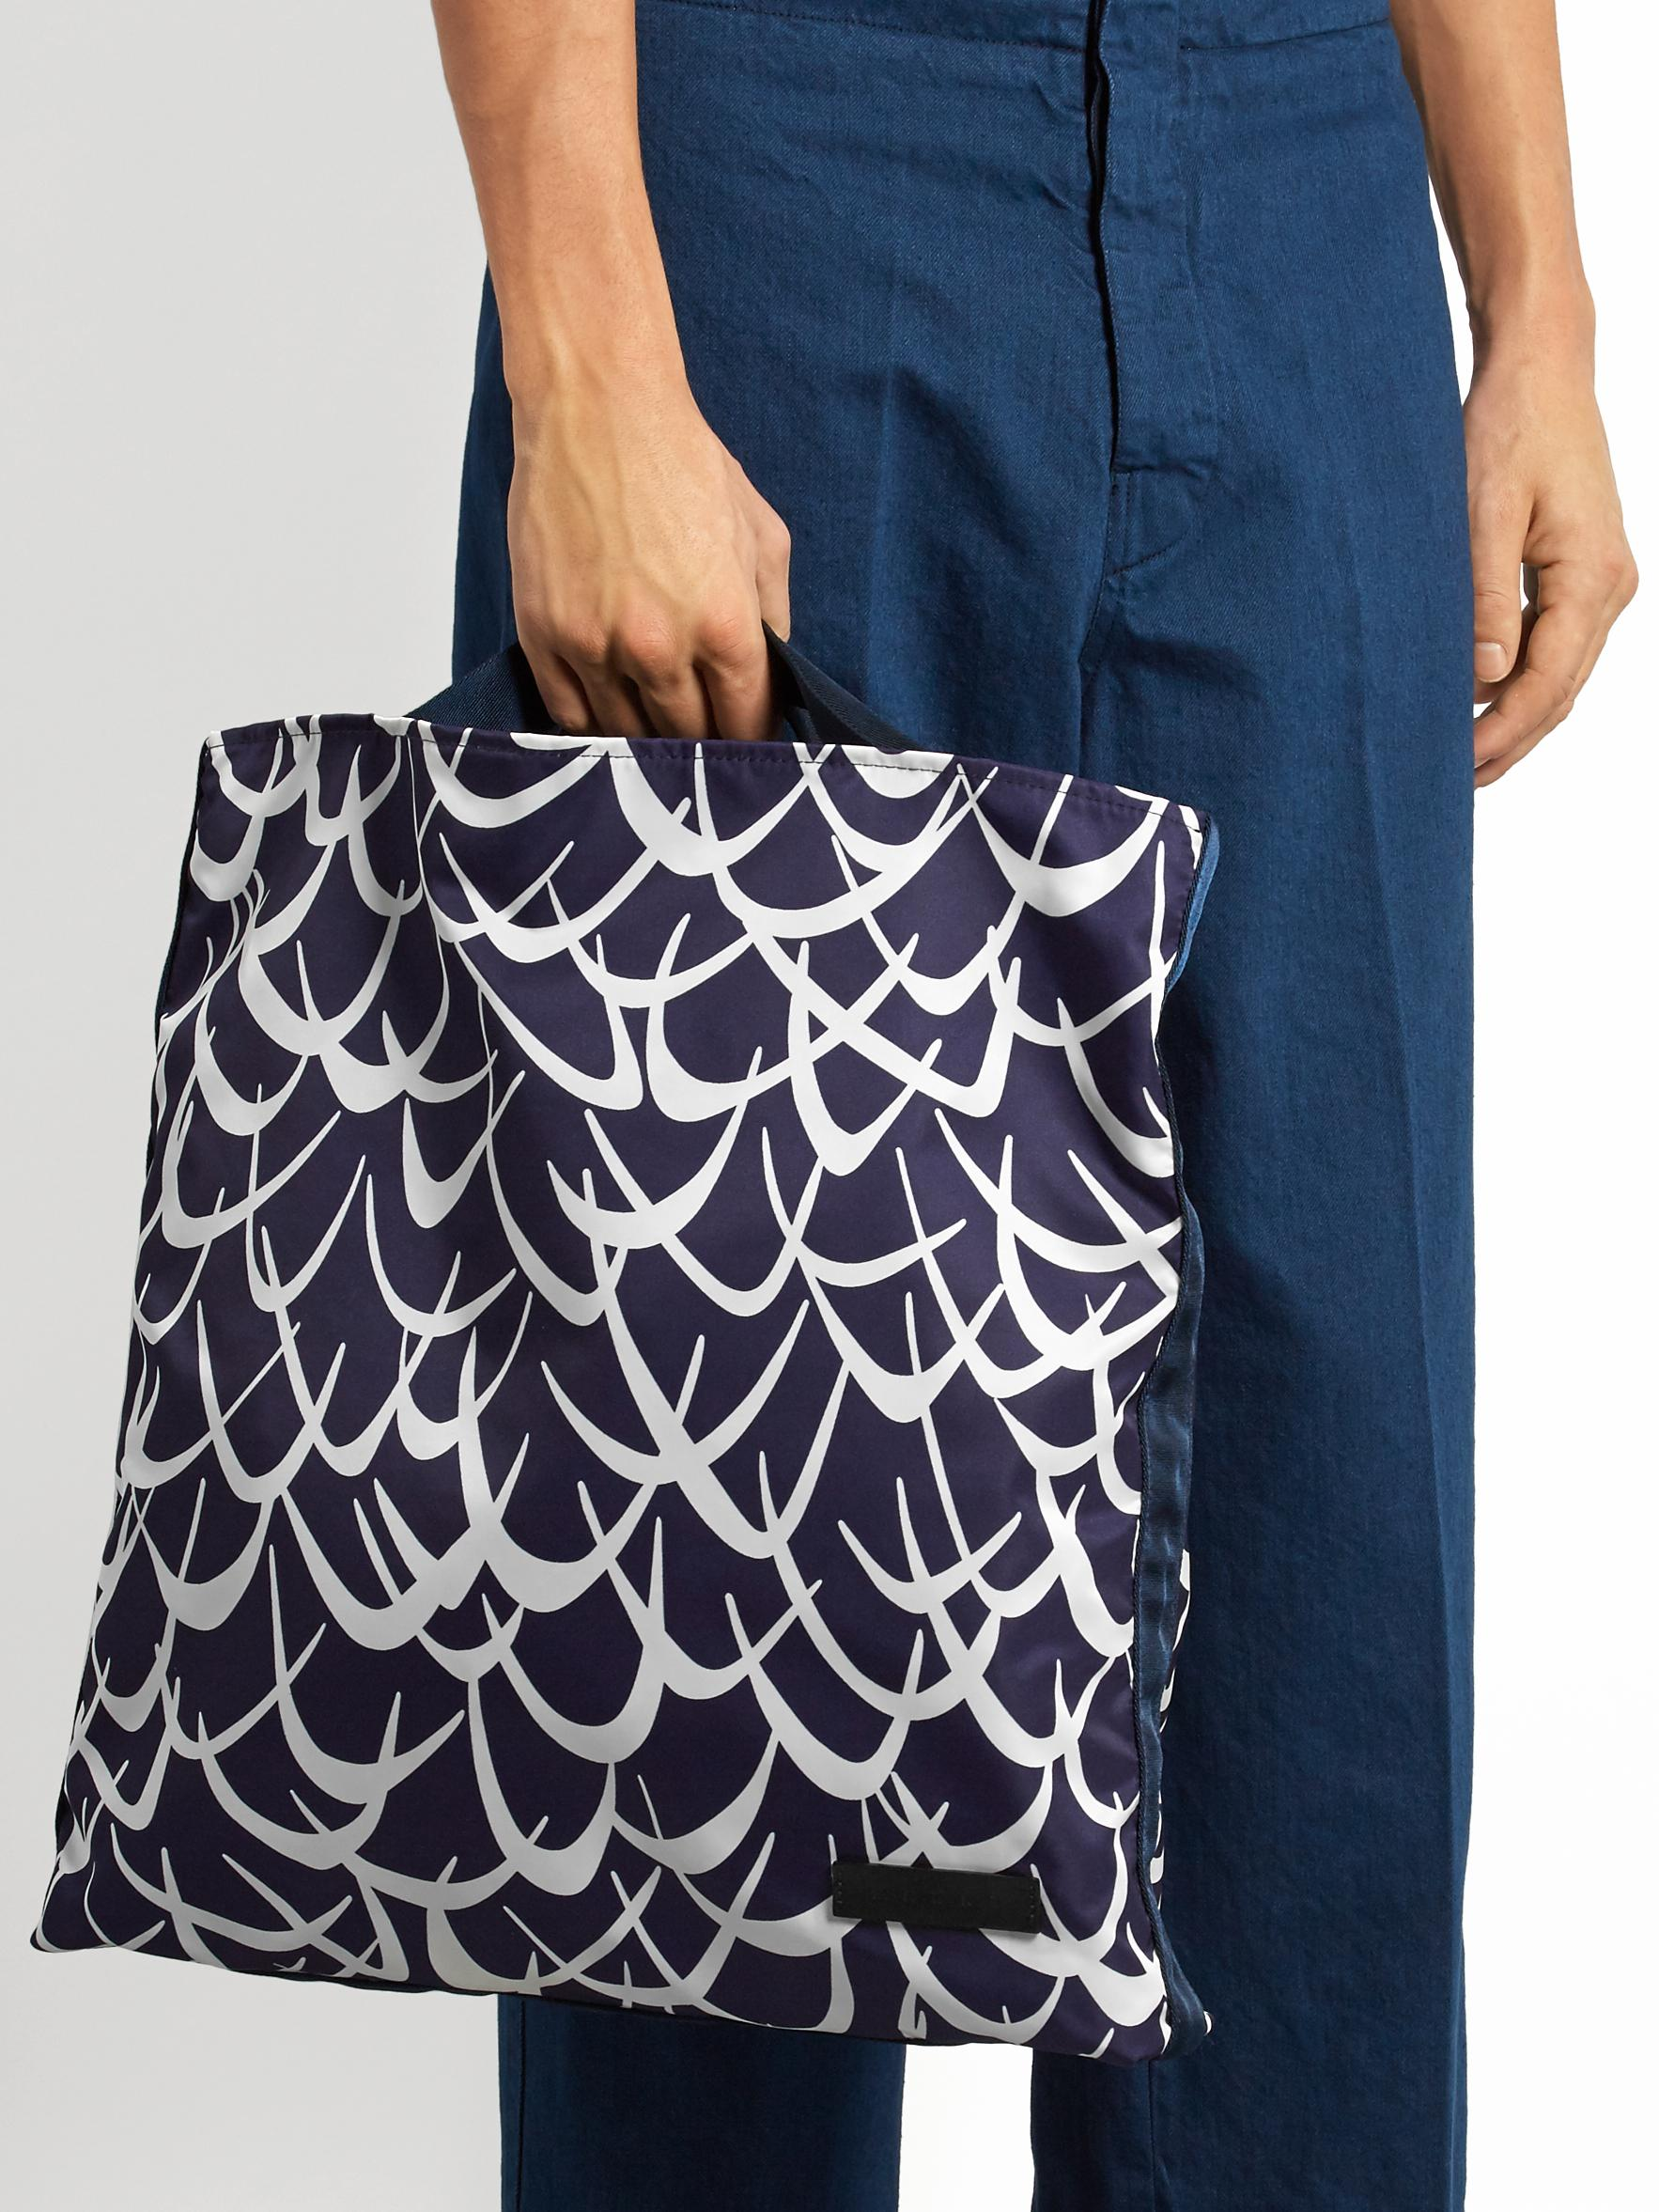 Marni Synthetic Boomerang-print Nylon Tote in Blue